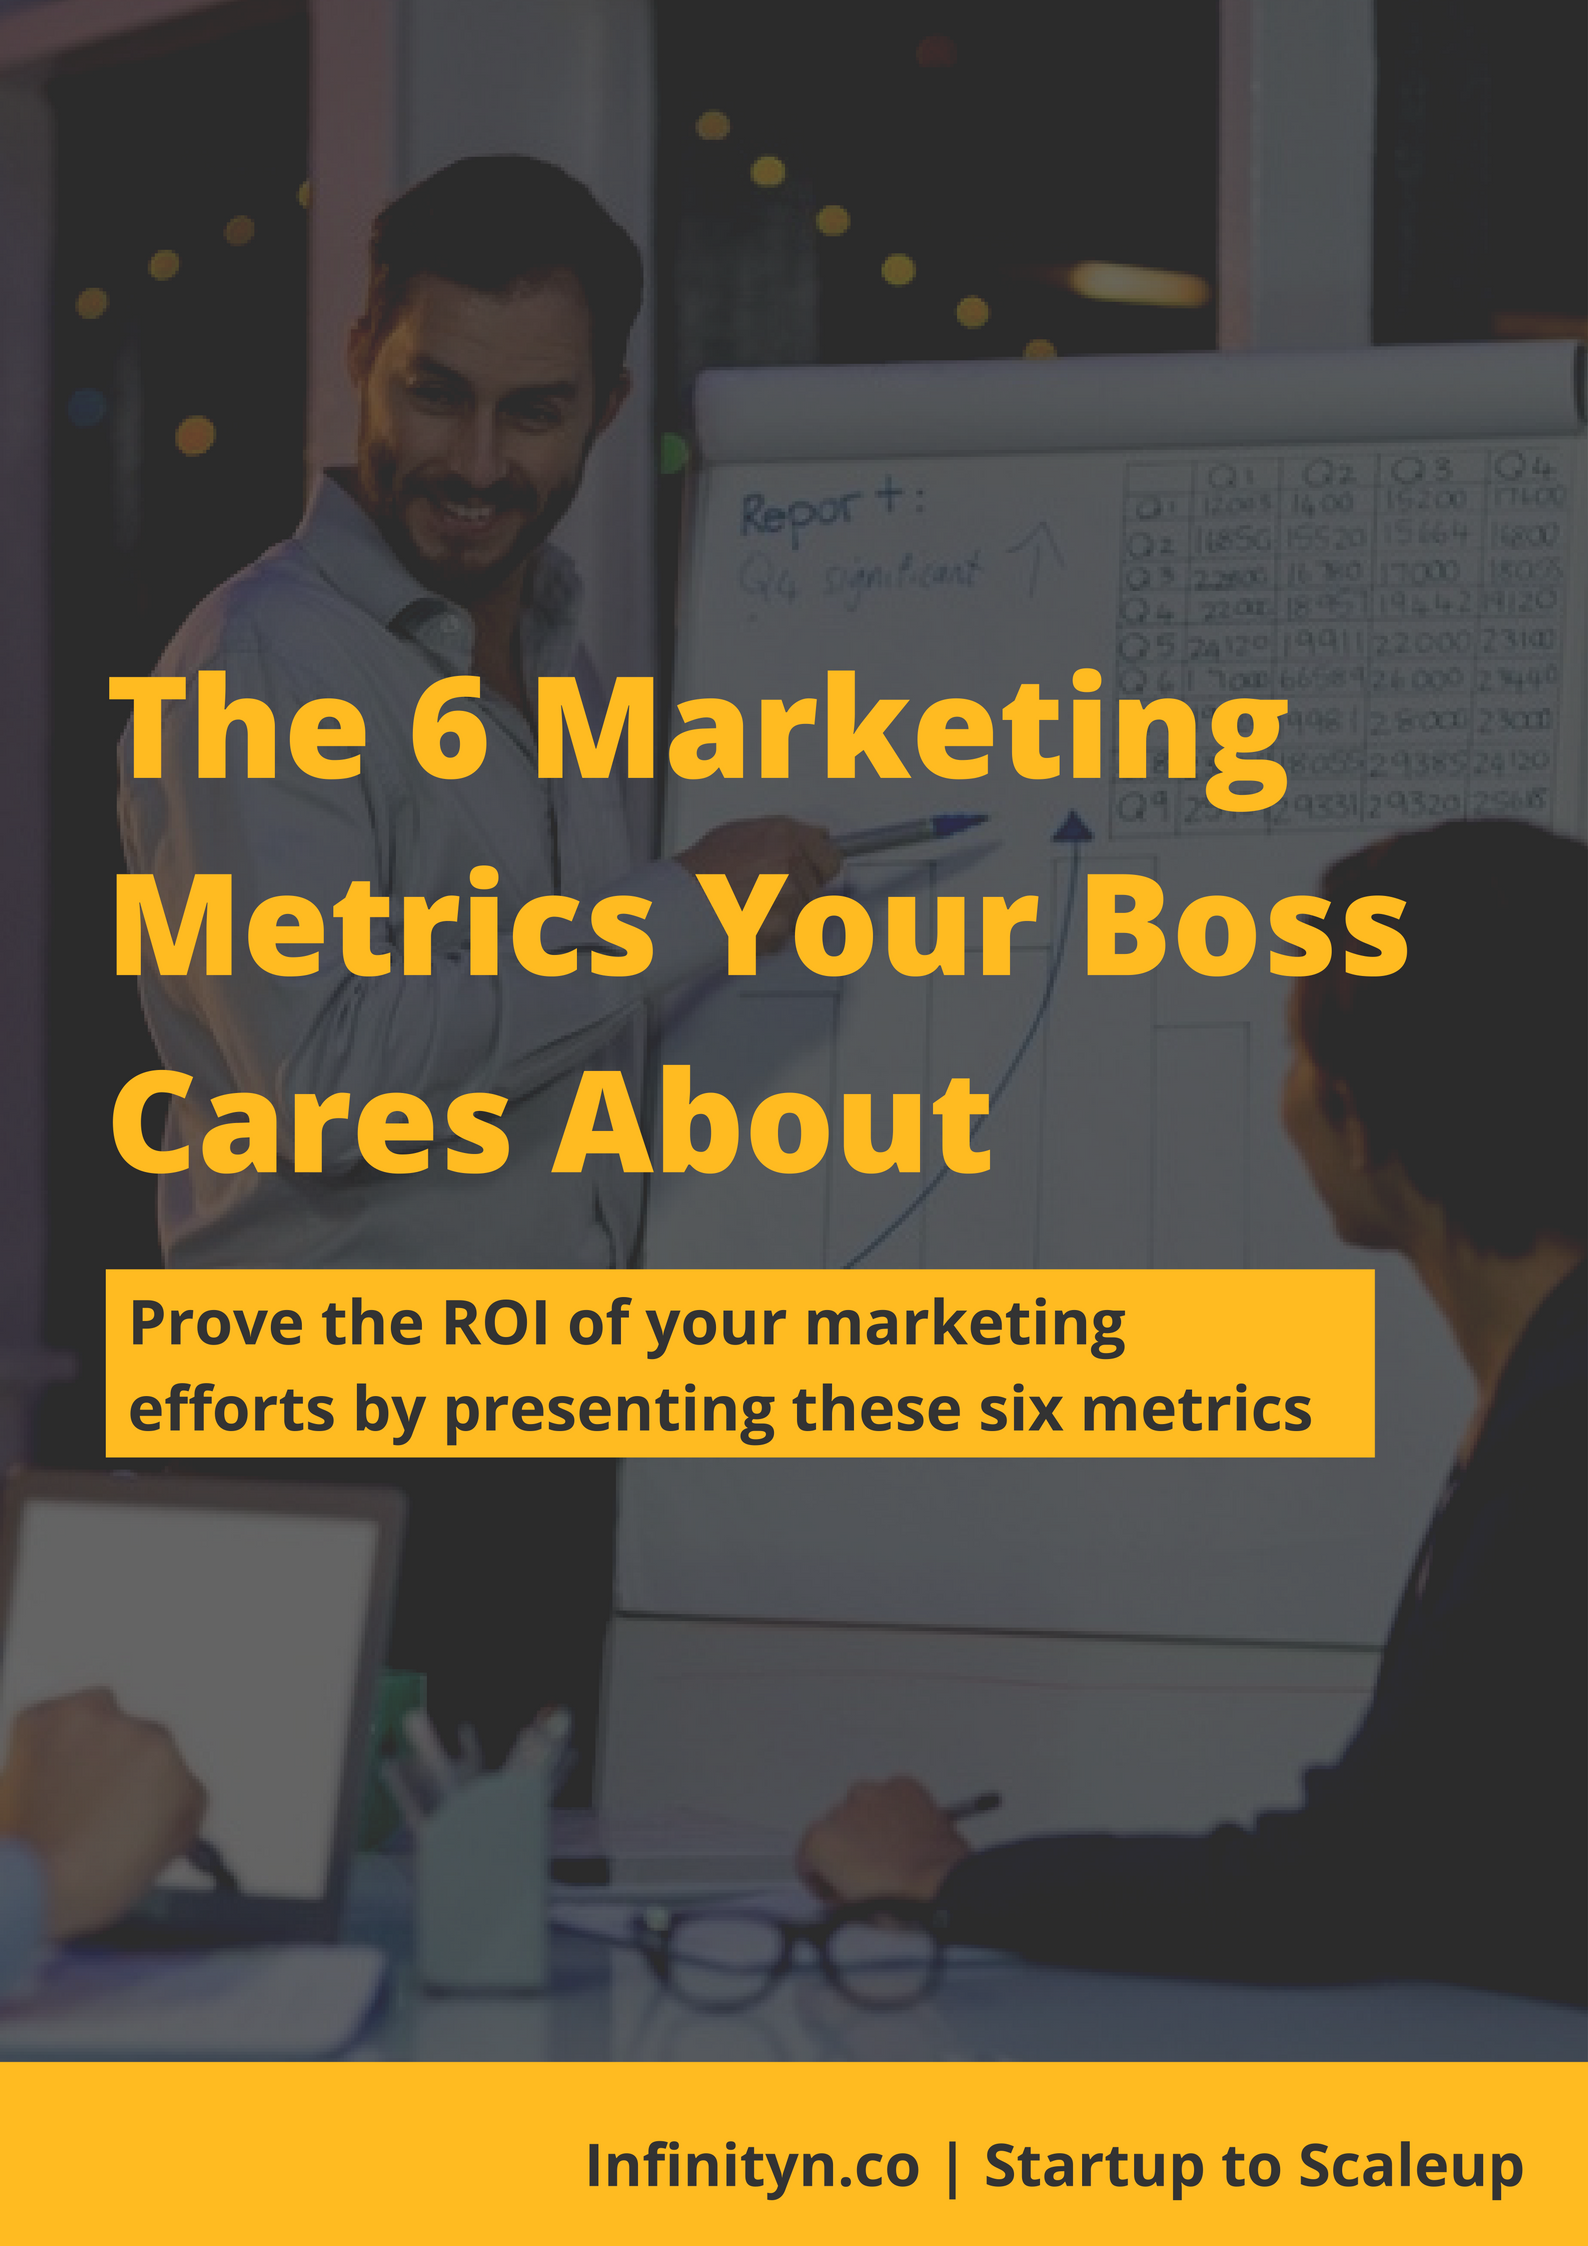 The 6 Metrics Your Boss Actually Cares About